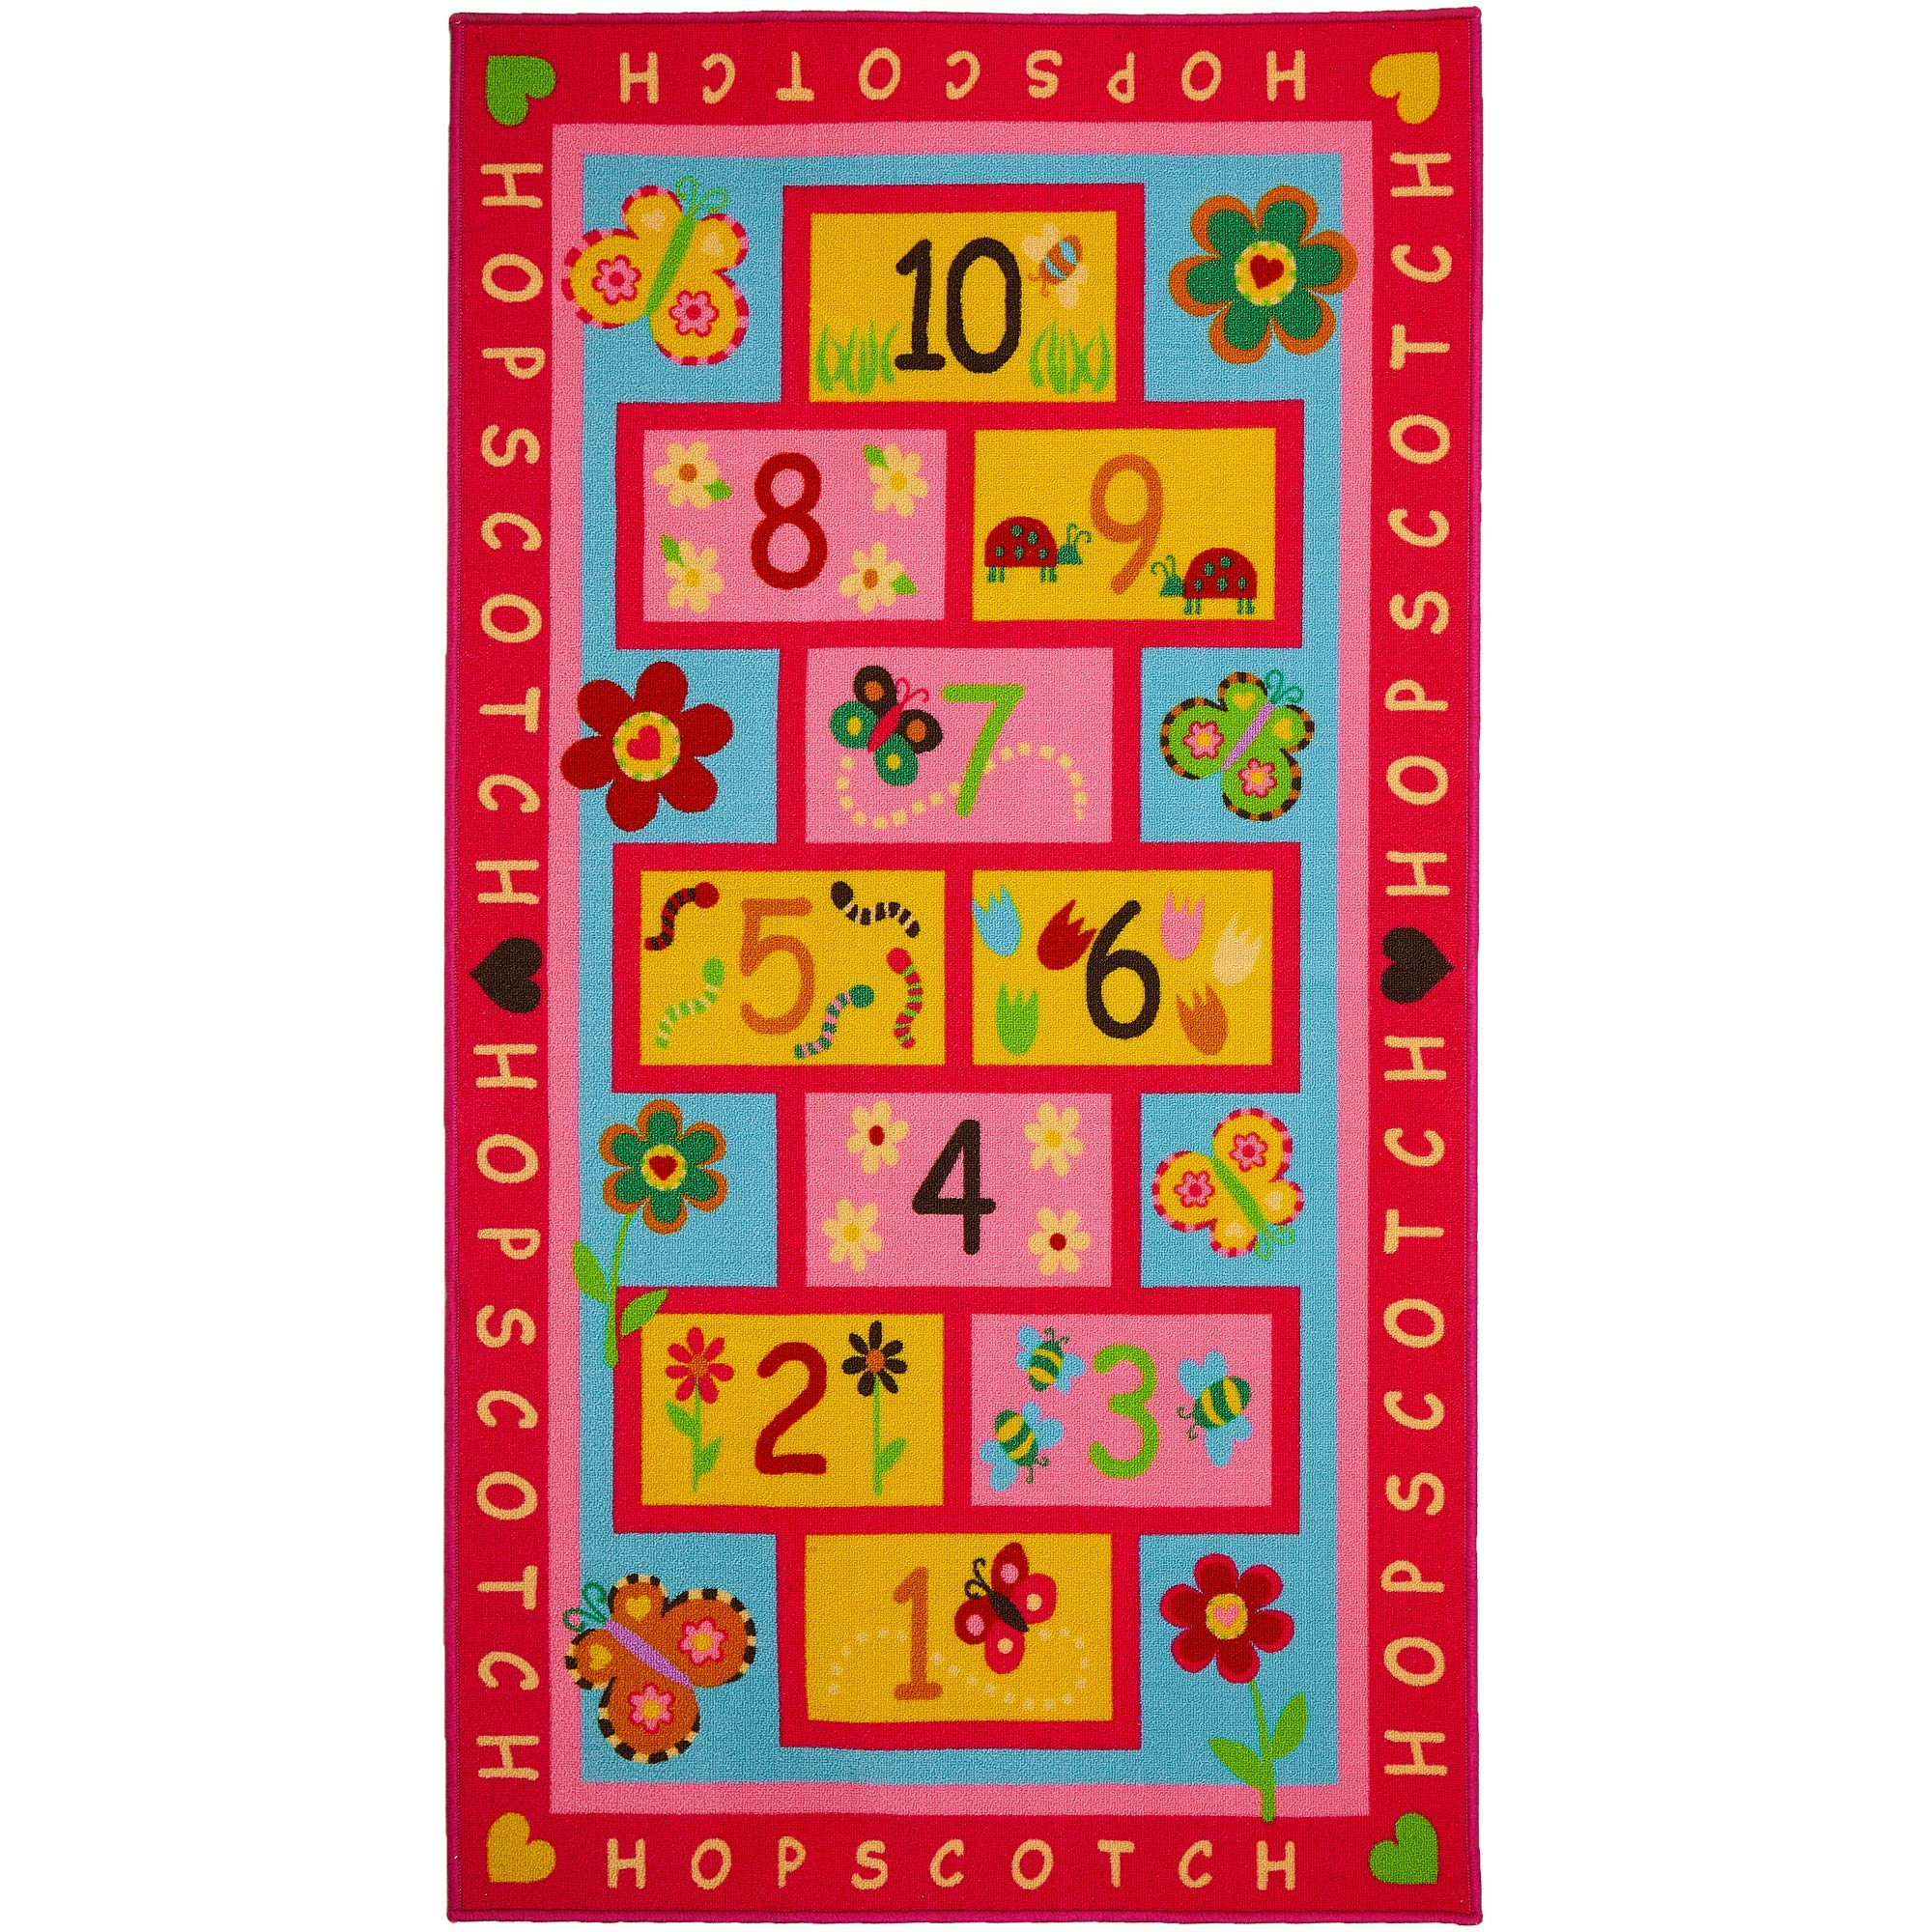 Hopscotch Rug, Extra Large & Wide 72''x39'' | Hop & Count - Educational & Fun | Durable Woven Floor Carpet, Kid's Floor Play Mat for Bedroom, Nursery, Classroom - Sturdy, Skid-Proof by Amy & Delle by Amy & Delle